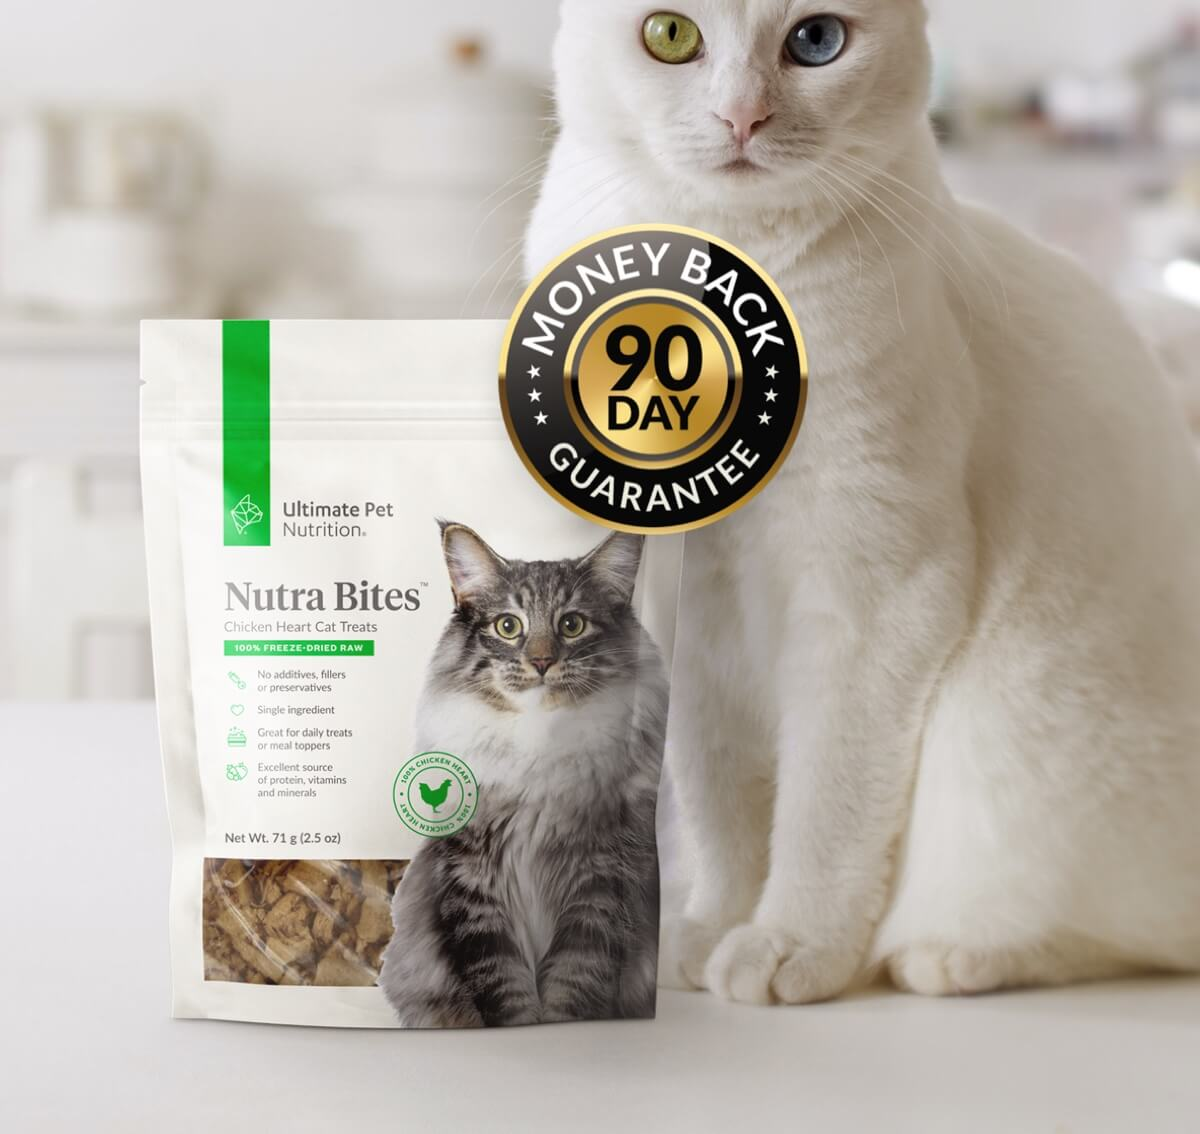 Ultimate Pet Nutrition - Nutra Bites Chicken Hearts For Cats